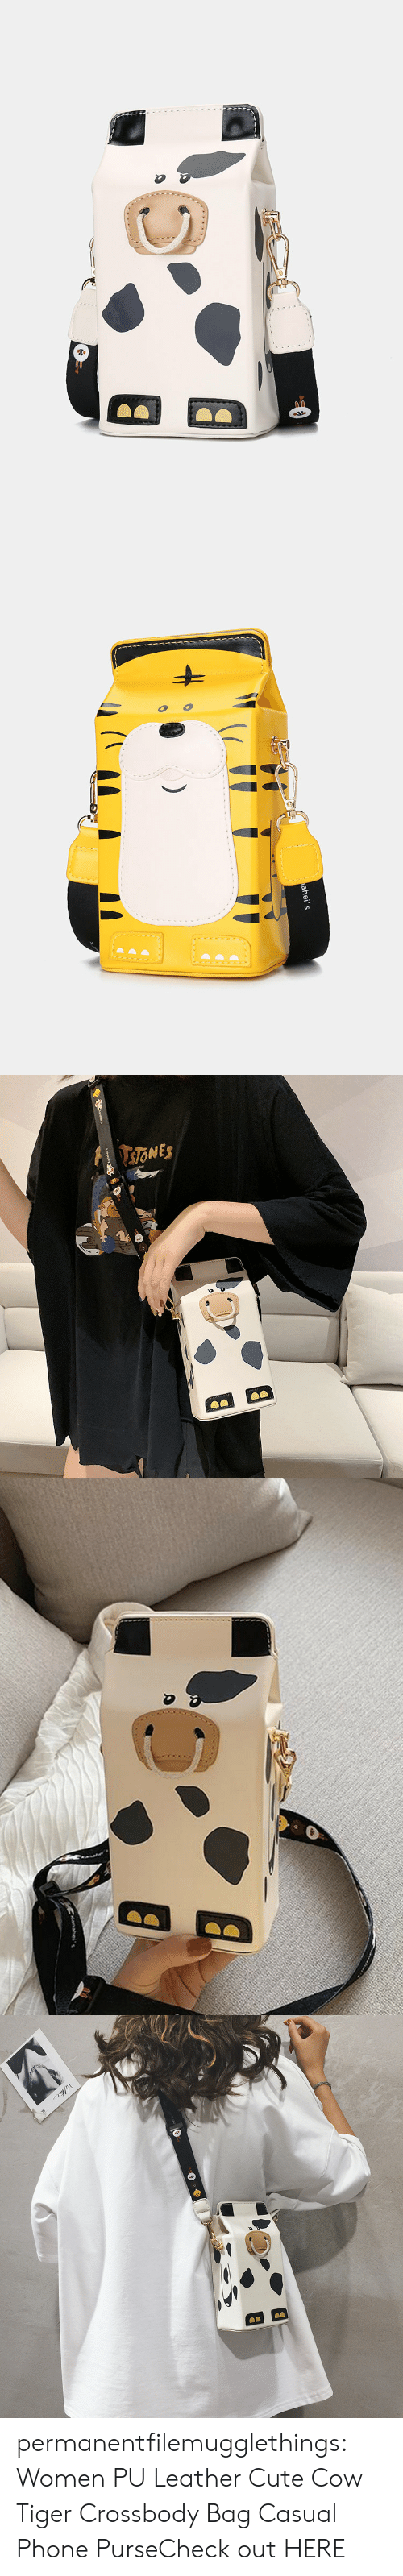 Leather: ahei   sONES   Kanahei s   Vaklare permanentfilemugglethings:  Women PU Leather Cute Cow Tiger Crossbody Bag Casual Phone PurseCheck out HERE